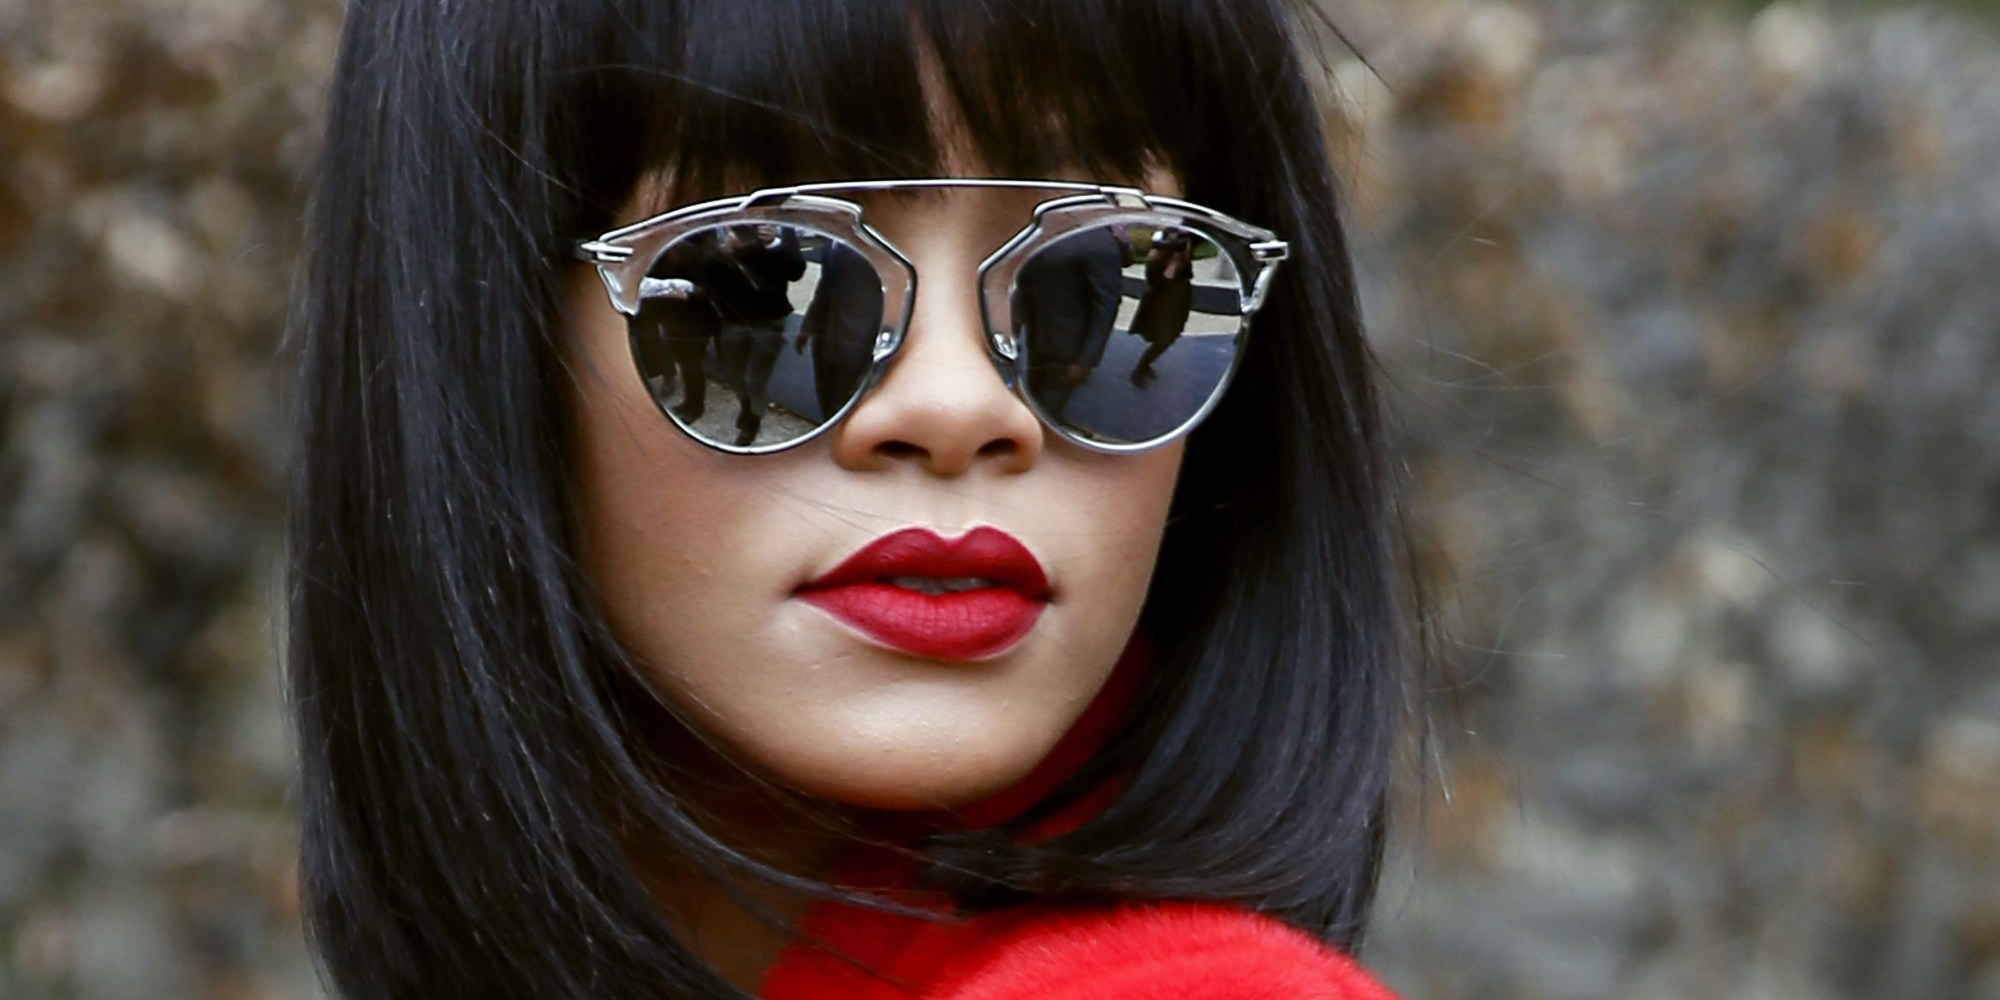 Best Sunglasses For Your Face Shape: Find Out The Styles